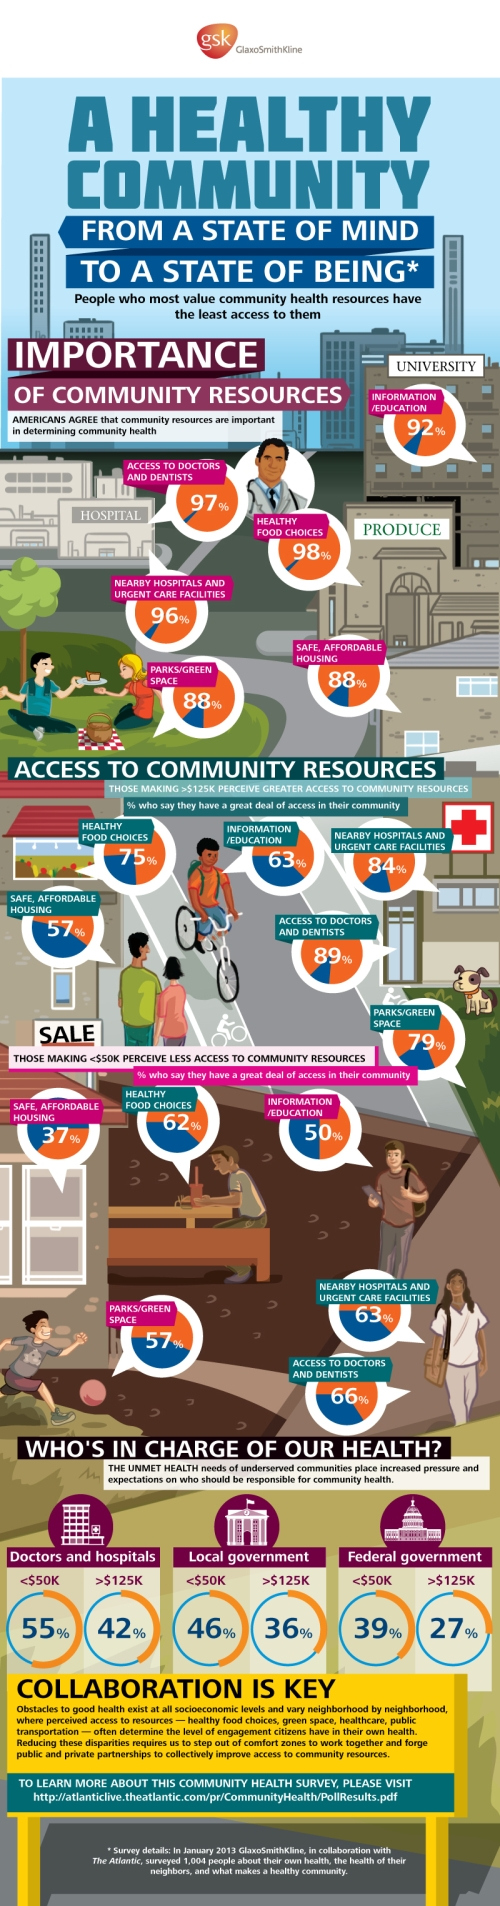 Healthy Community Survey Infographic[1]